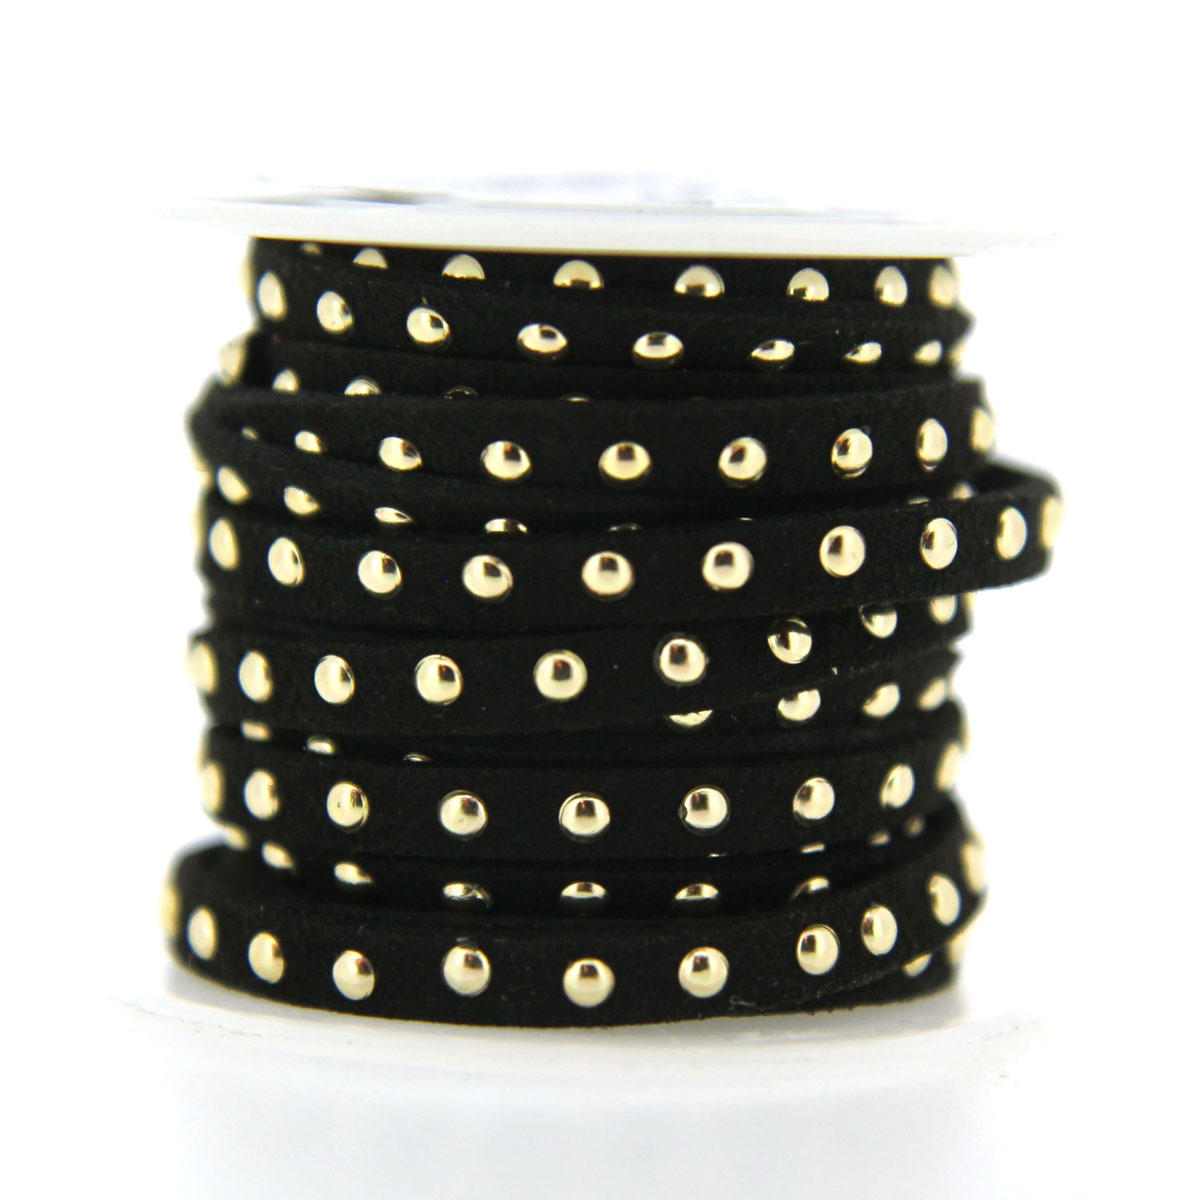 Black 5mm Faux Suede with Gold Rivets